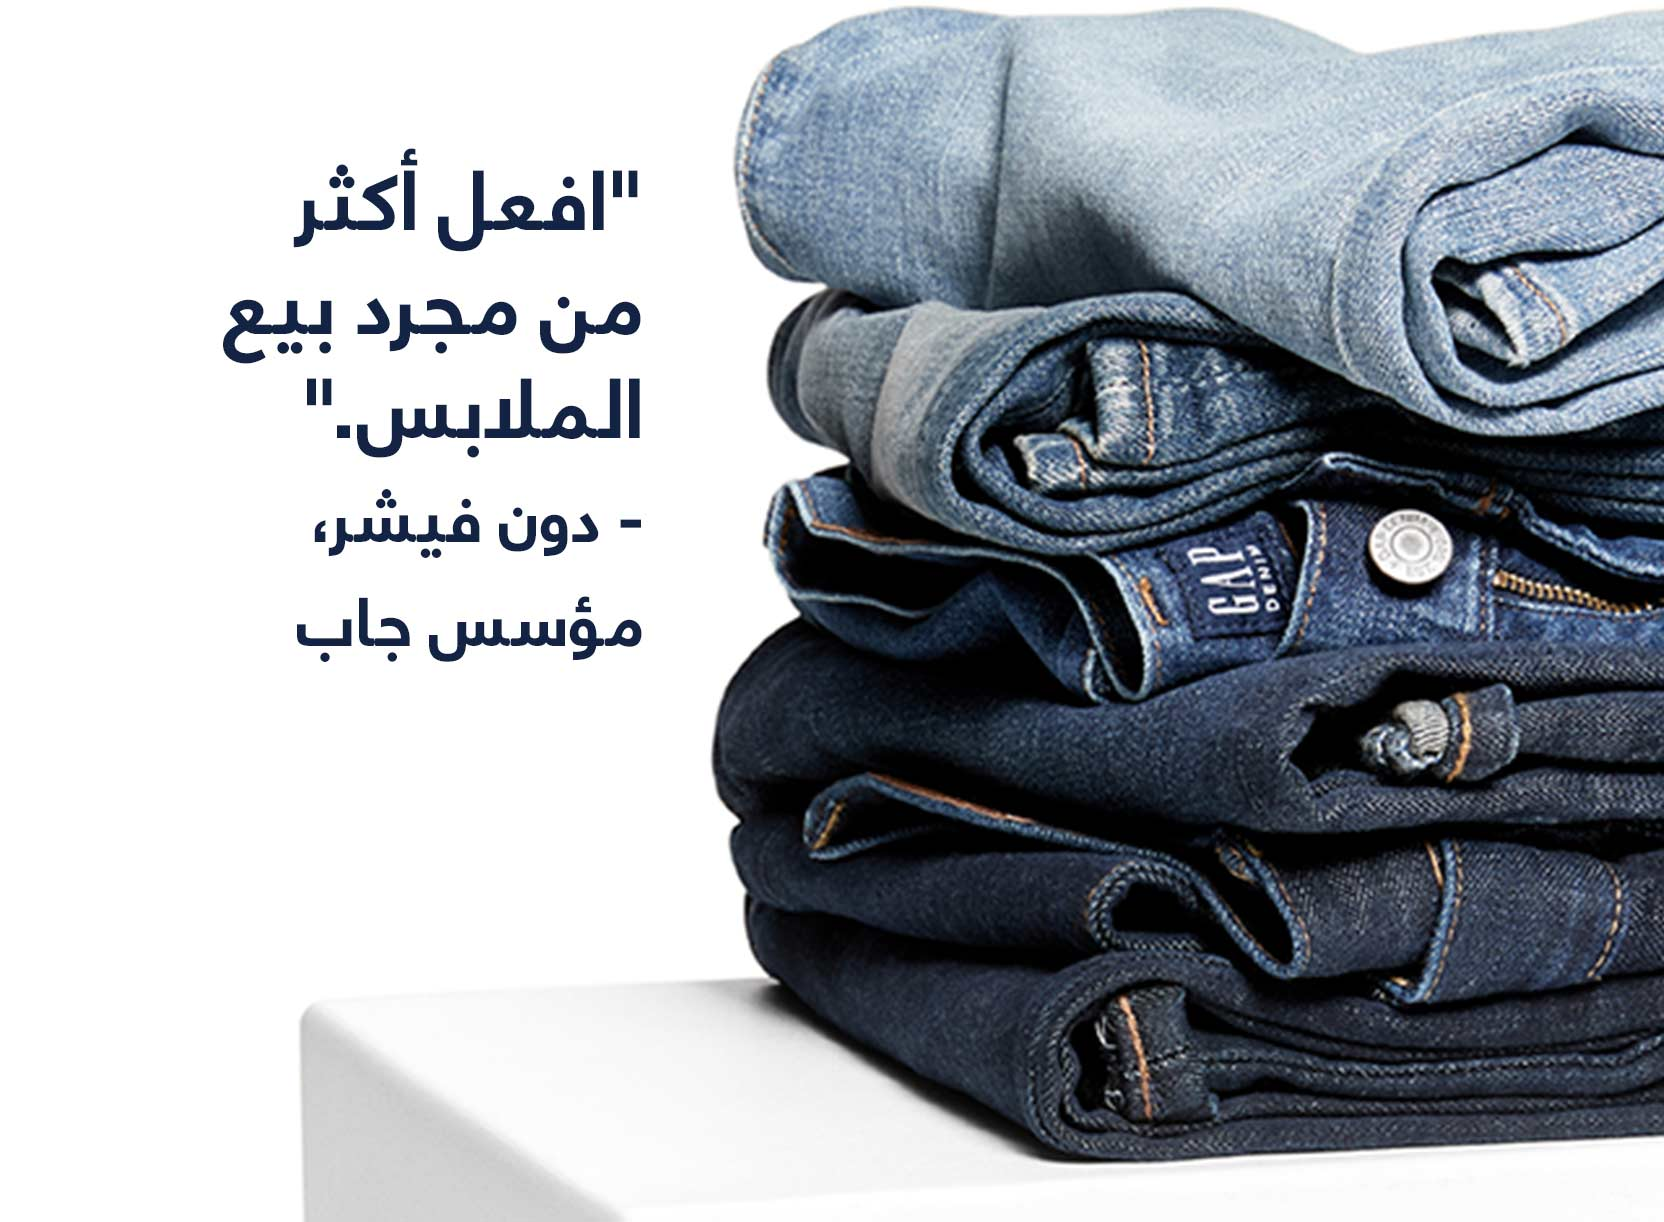 Do more than sell clothes.